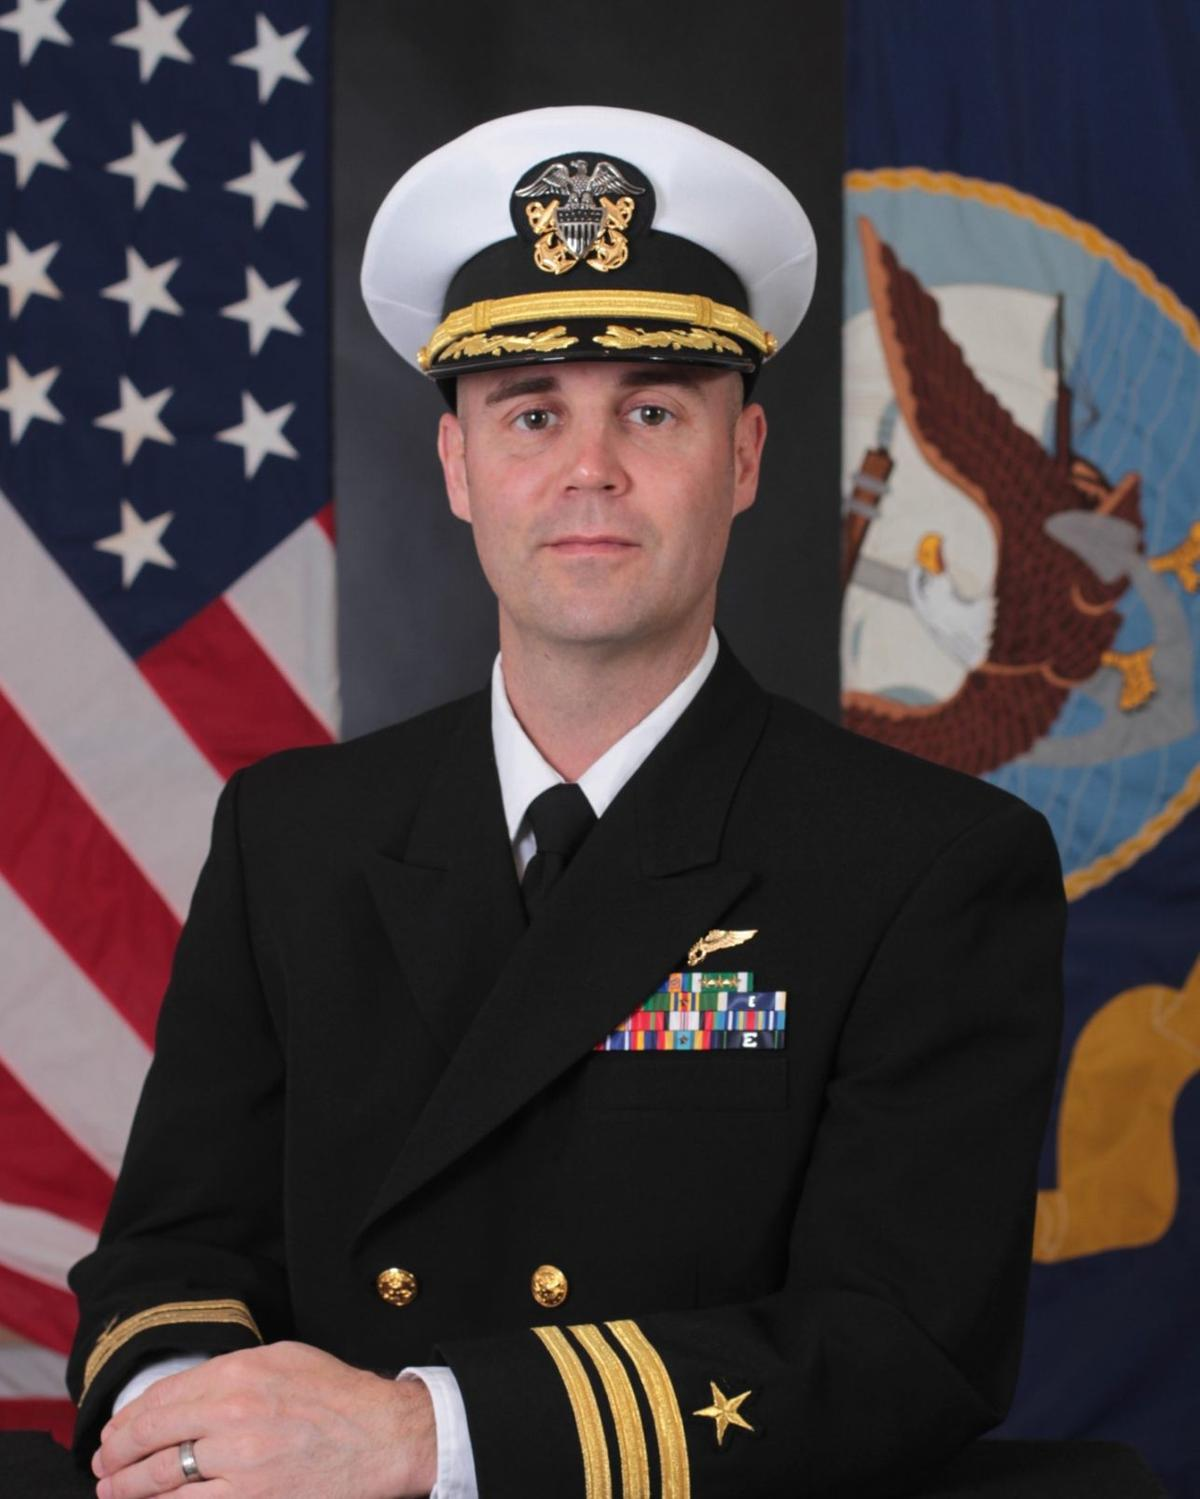 Cmdr. Dustin W. Peverill